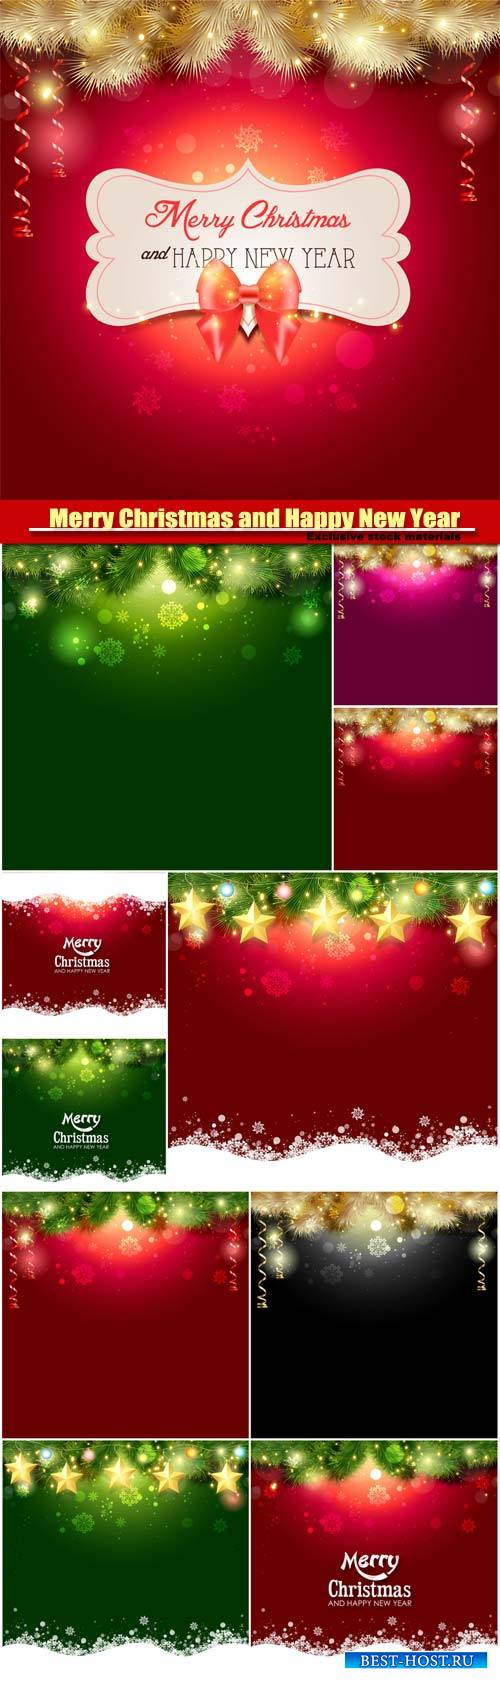 Merry Christmas and Happy New Year vector, background with a glowing effect